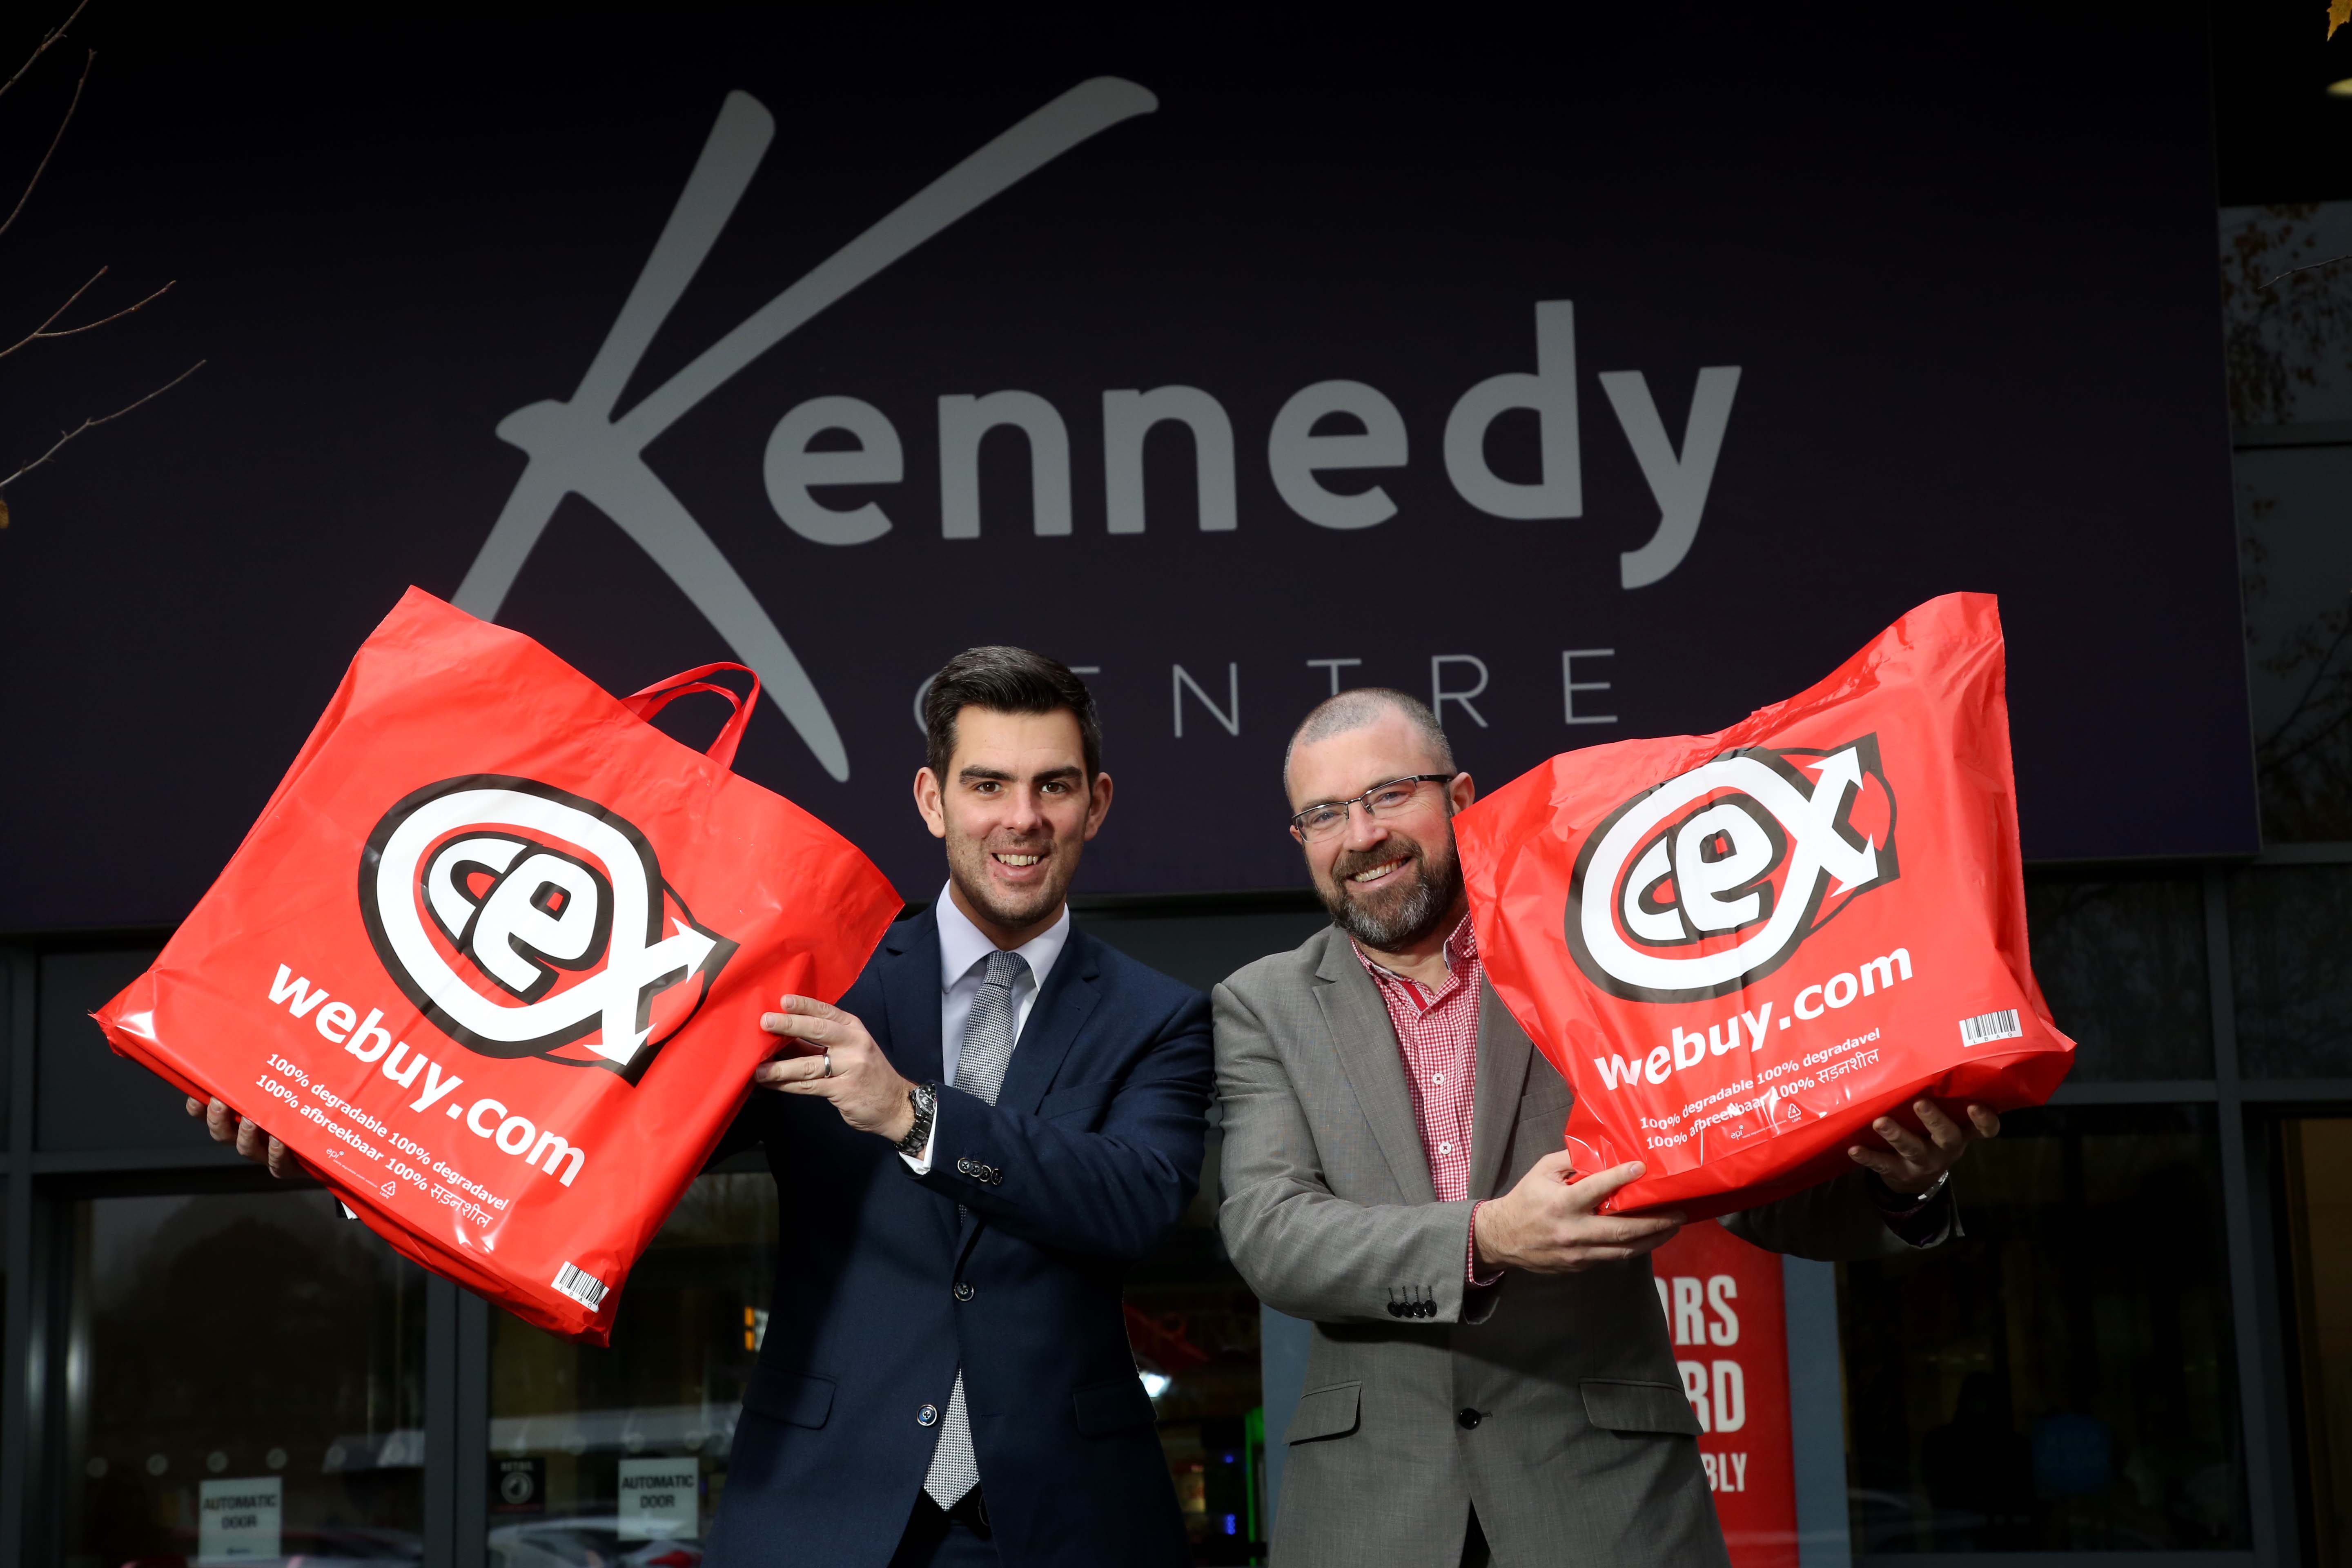 New CEX Store Kennedy Centre Belfast